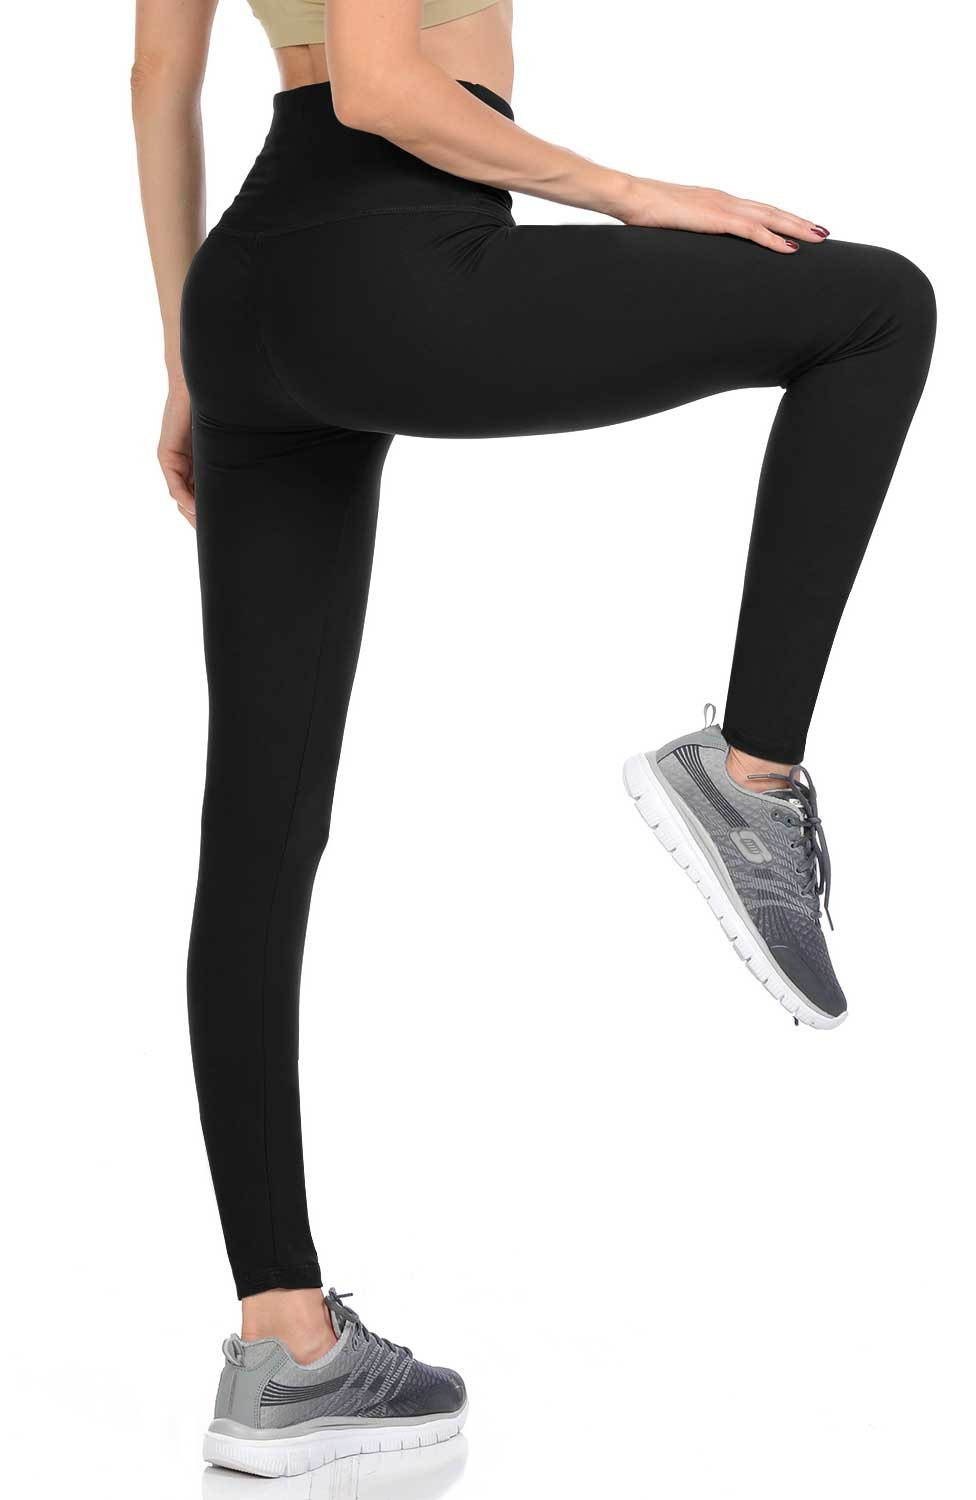 VIV Collection Regular Size Leggings Yoga Waistband Soft w/Hidden Pocket (Black)